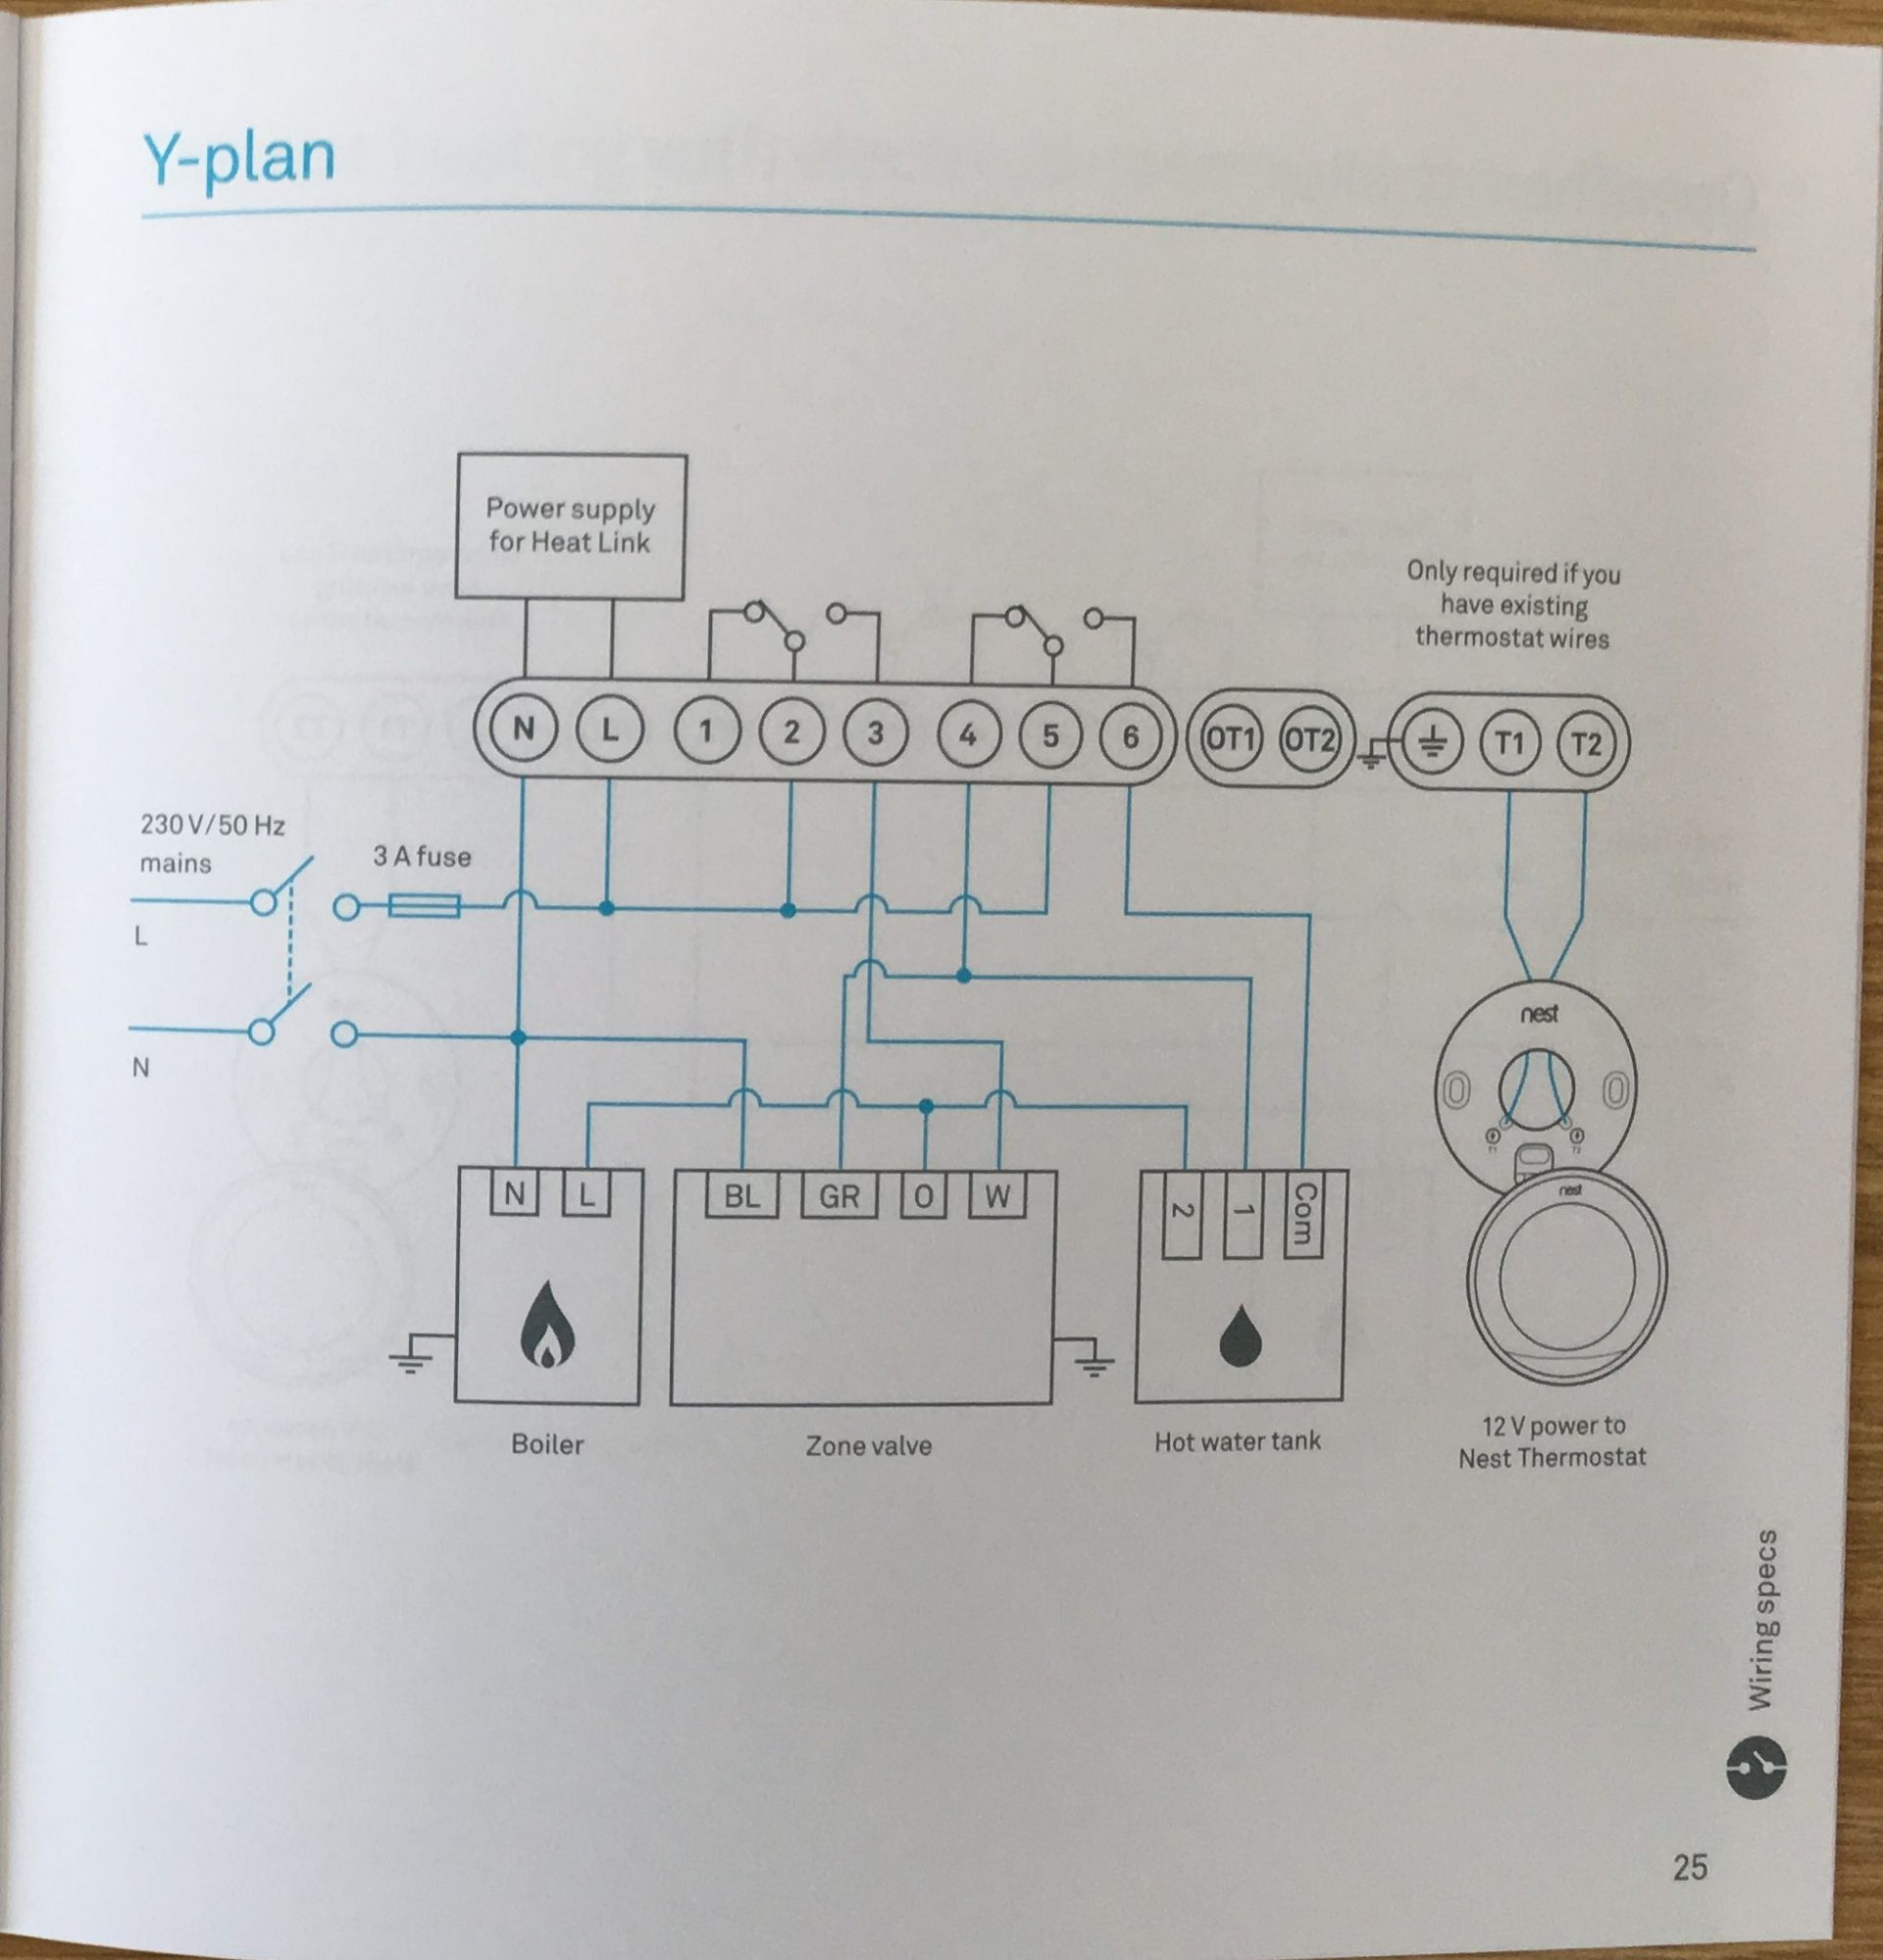 How To Install The Nest Learning Thermostat (3Rd Gen) In A Y-Plan - Nest Wiring Diagram S Plan